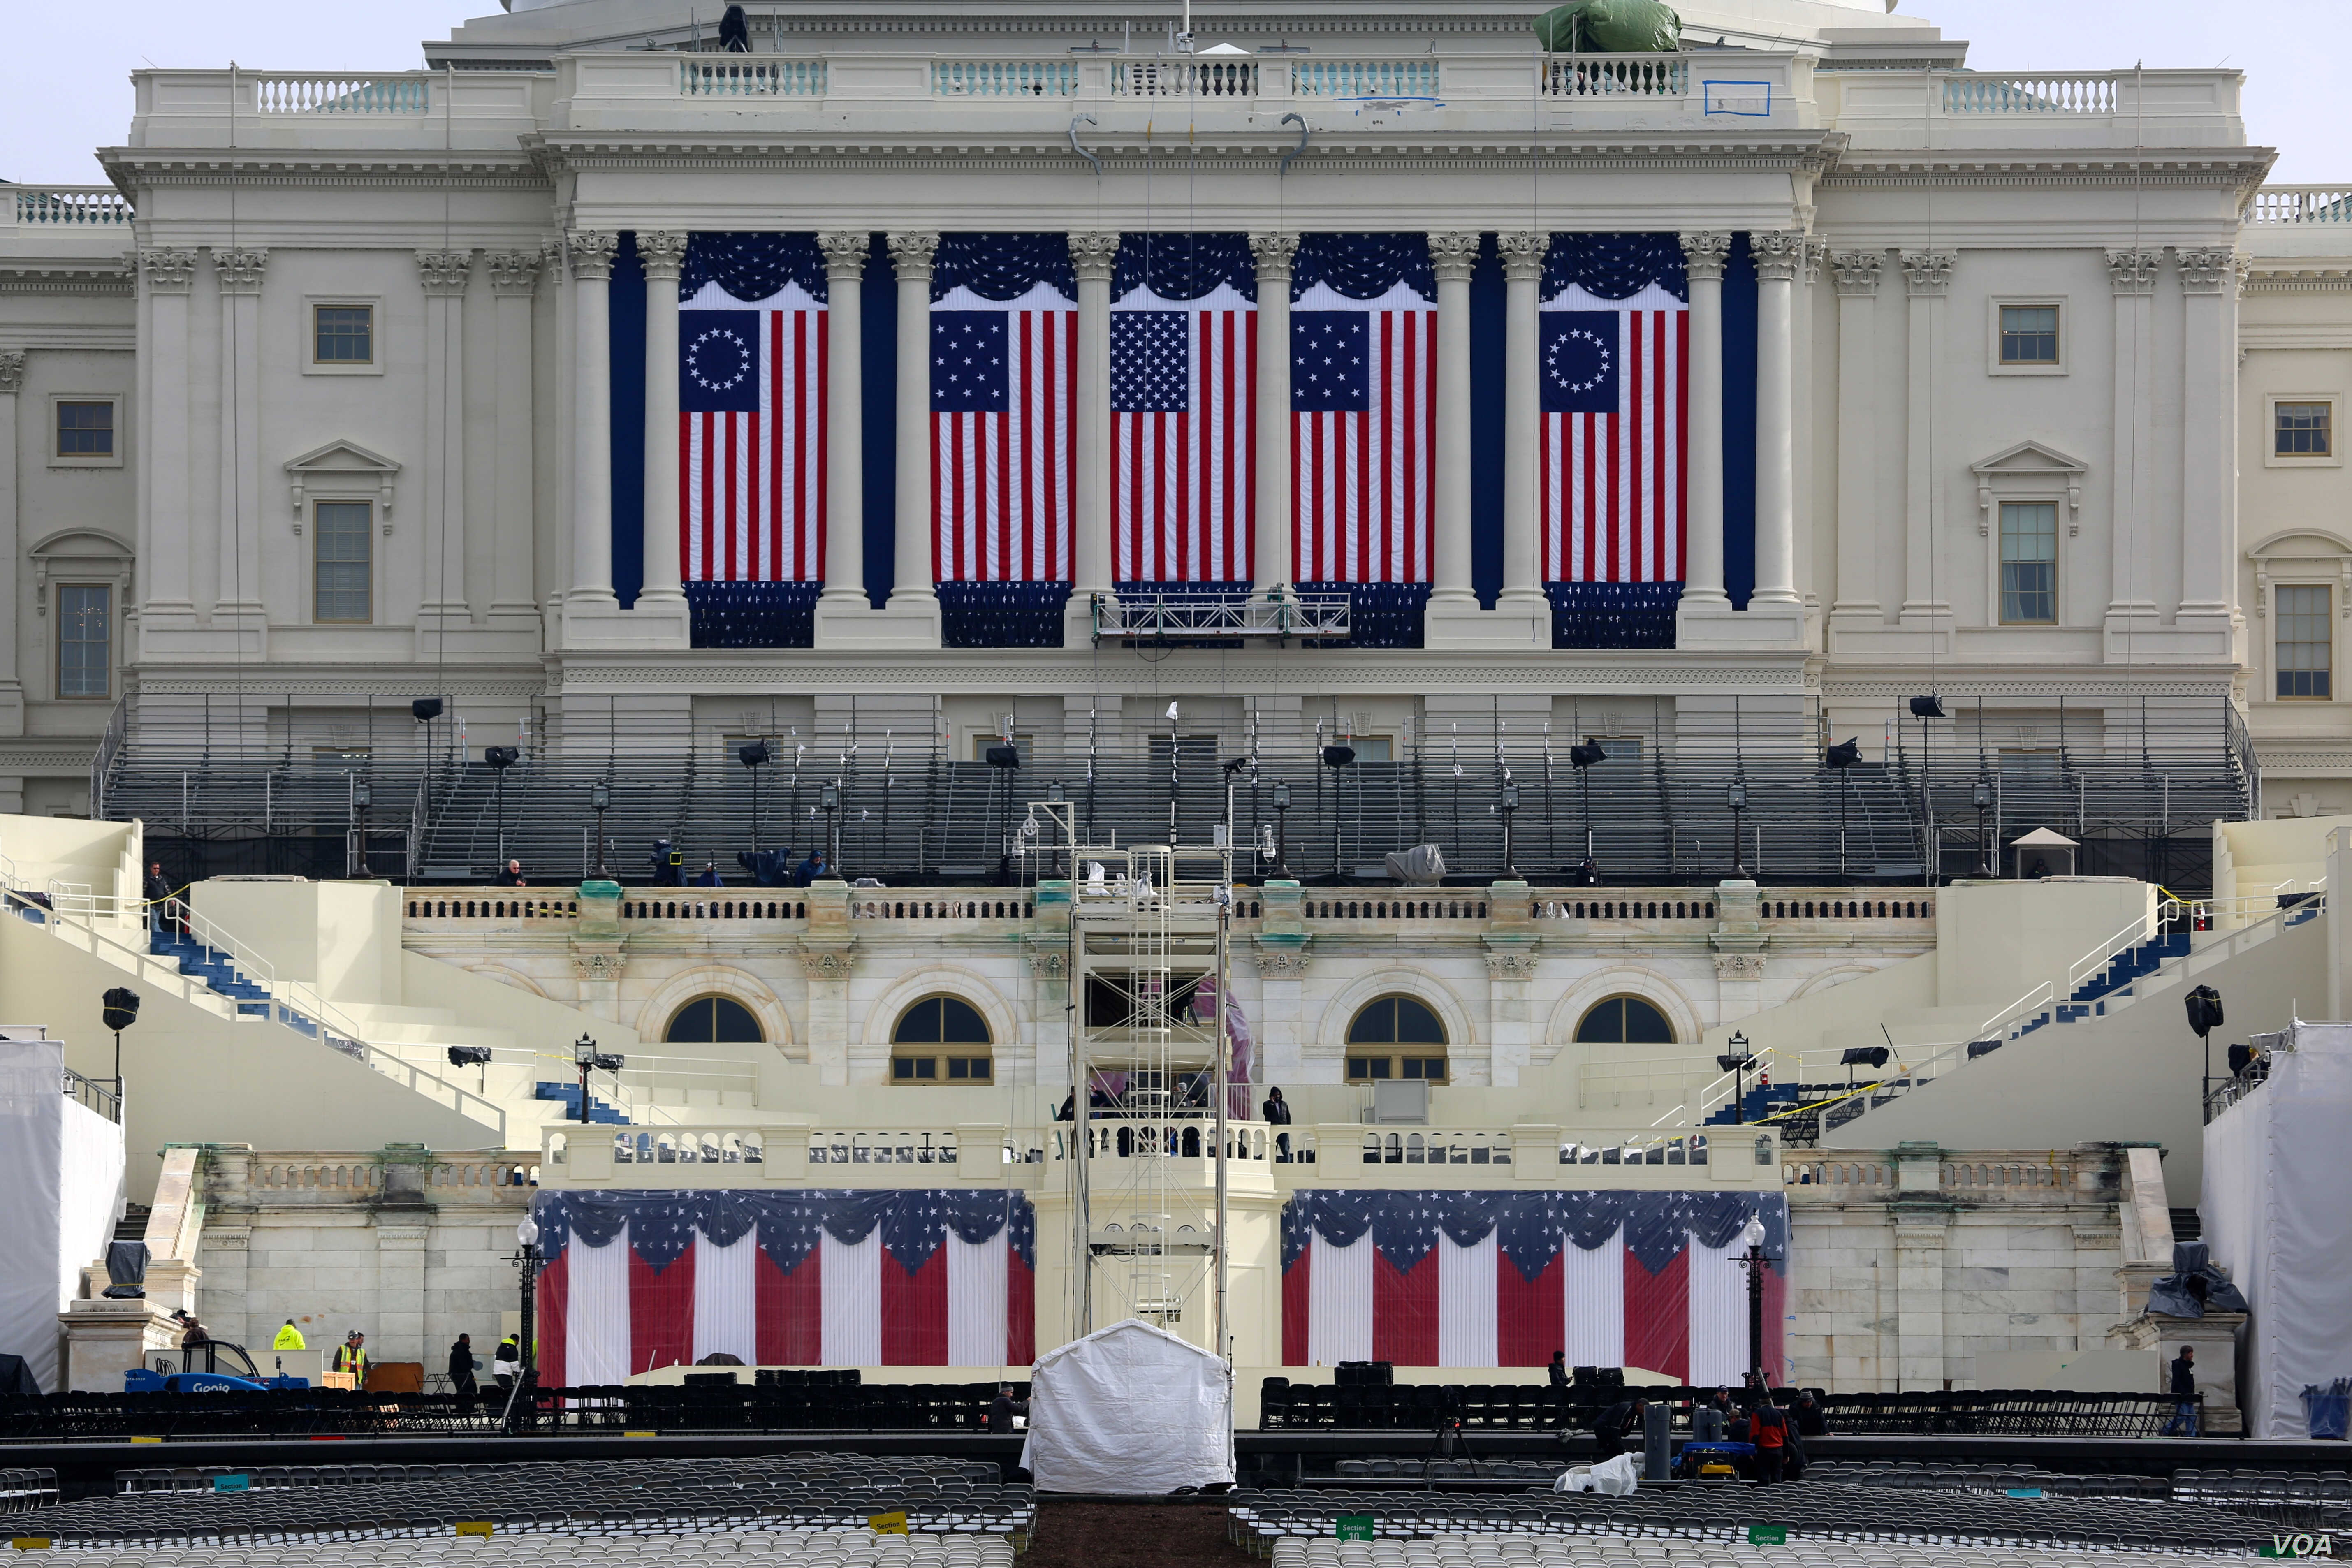 Preparations at the U.S. Capitol for the inauguration of Donald Trump as the 45th president of the United States in Washington, D.C., Jan 17, 2017. (Photo: B. Allen / VOA)